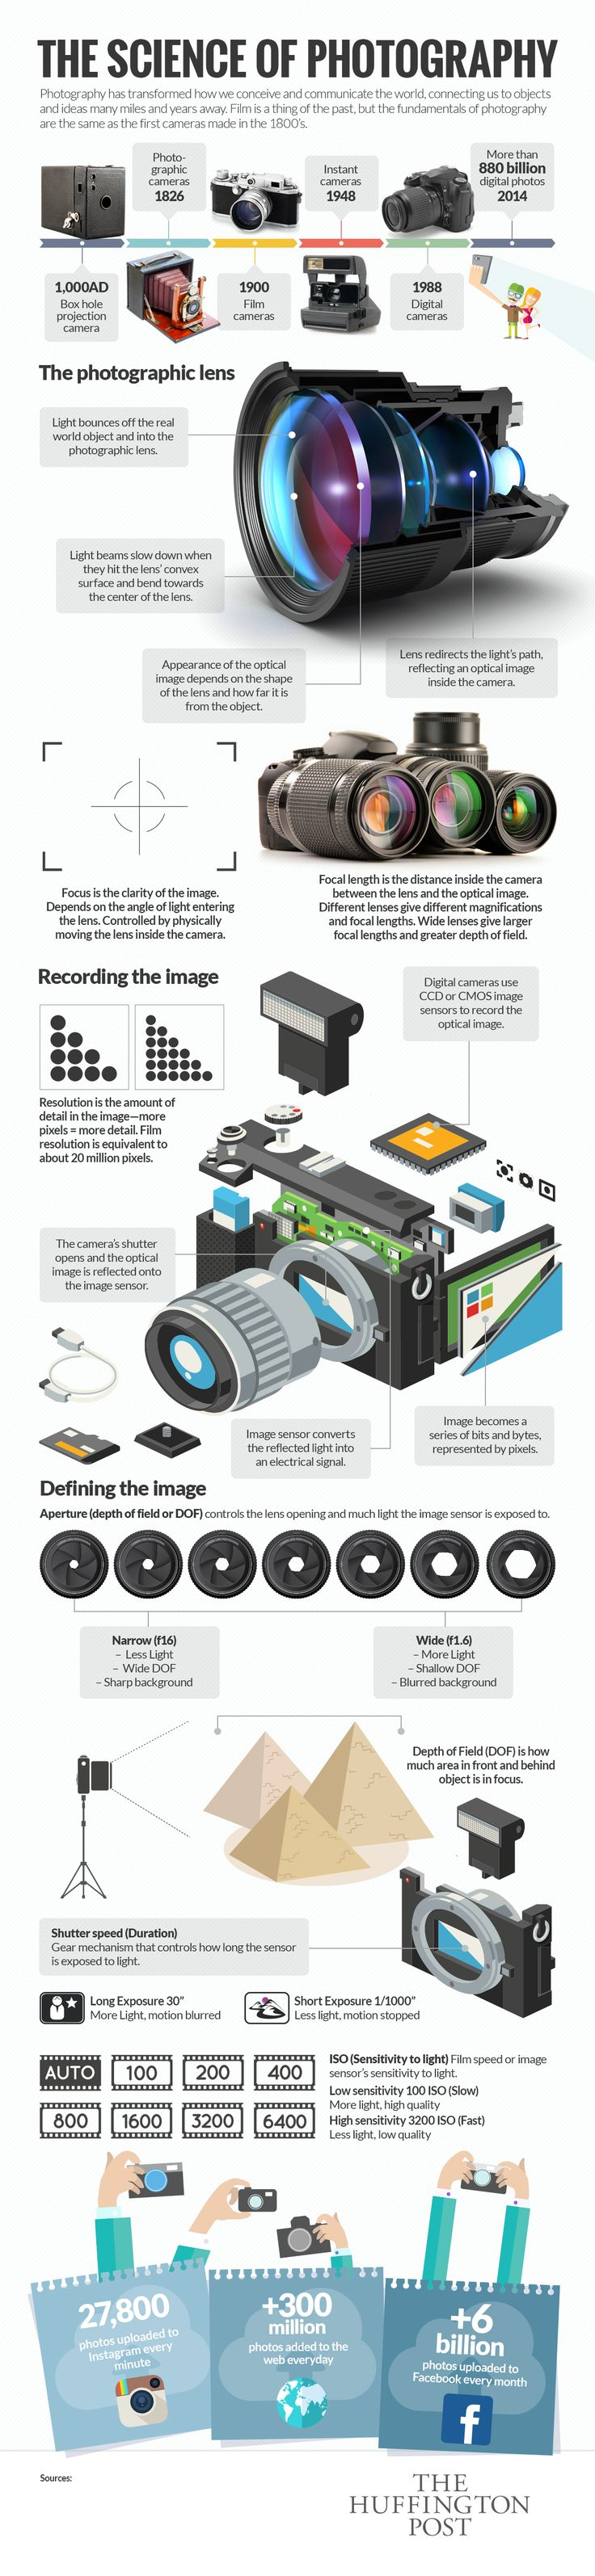 How Photography Actually Works: The Science of Photography Infographic